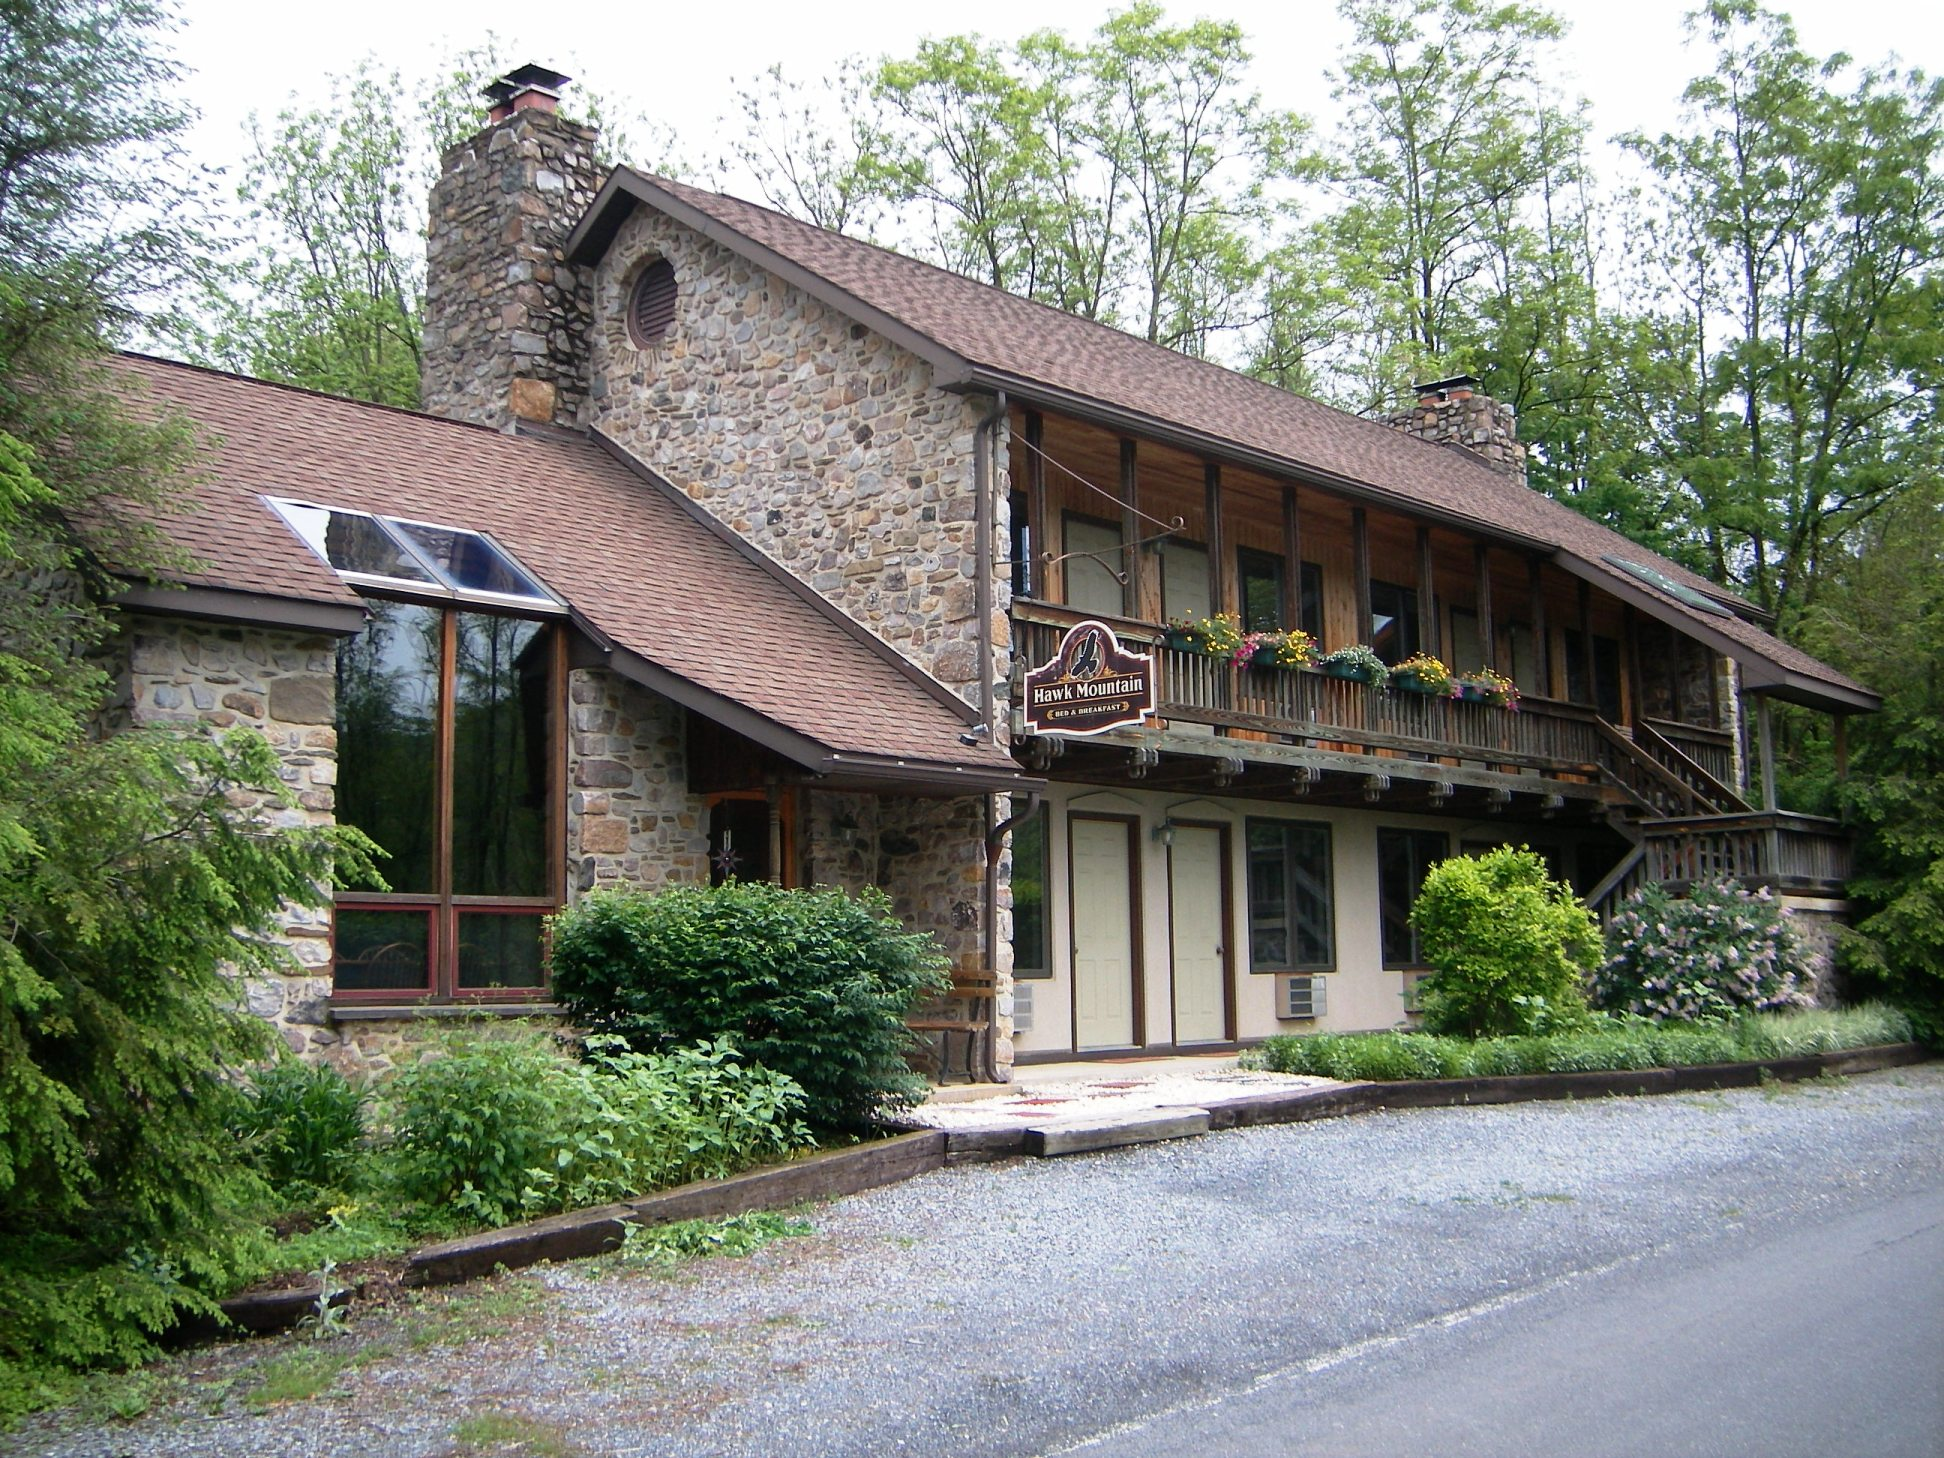 hawk mountain b&b | the perfect place to relax and unwind…